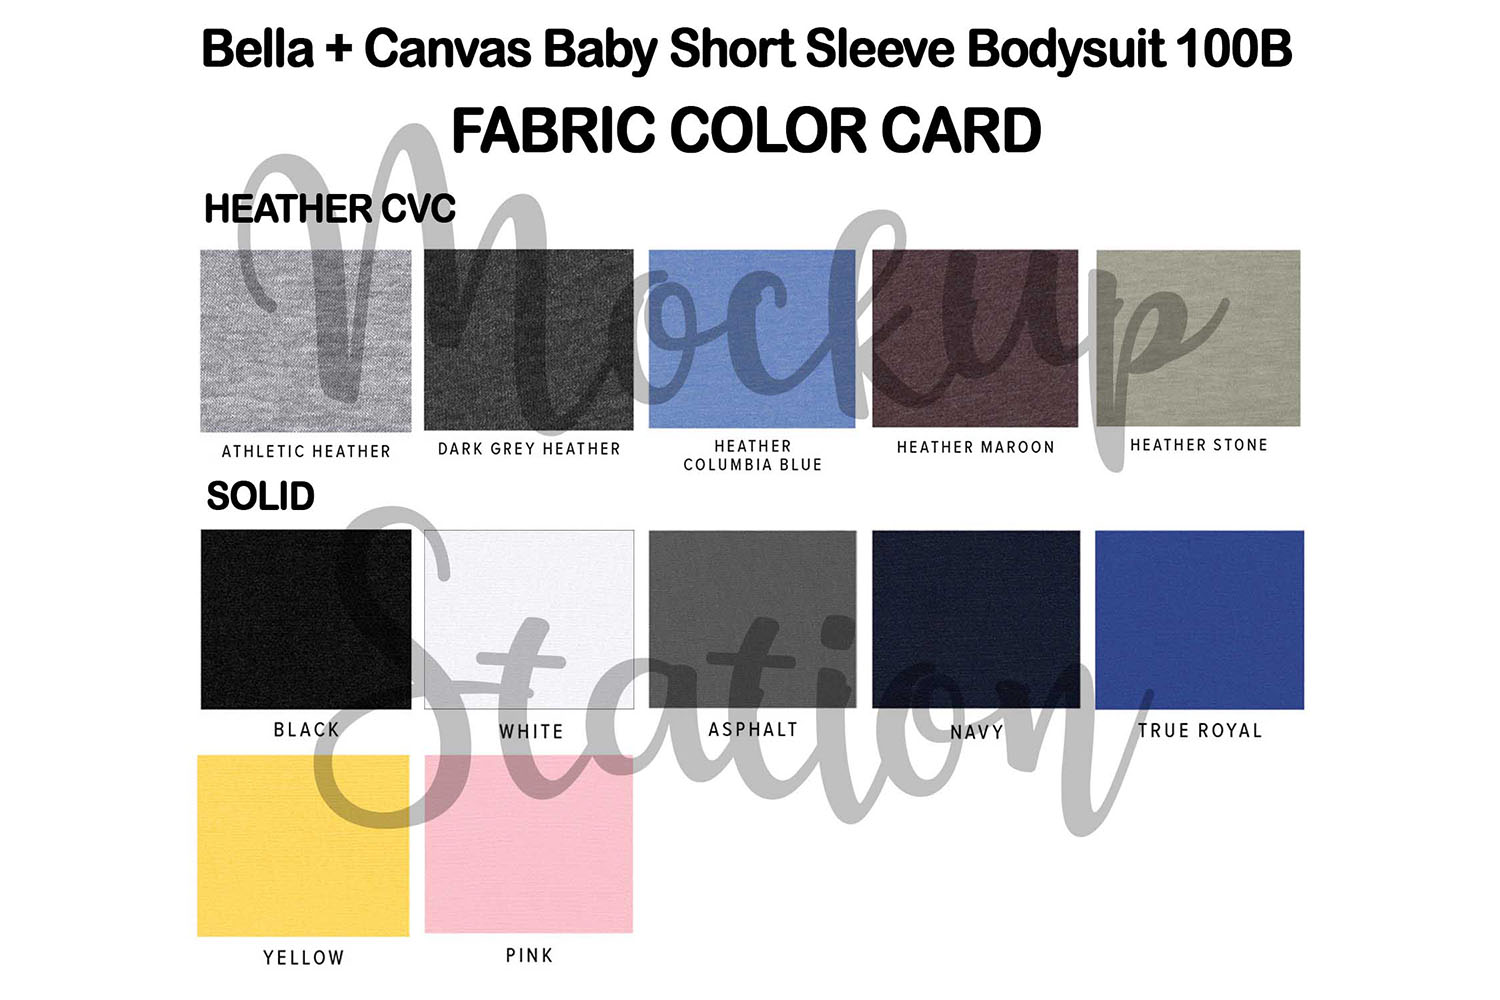 Color Chart for Bella Canvas 100B Baby Bodysuit Mockup example image 3